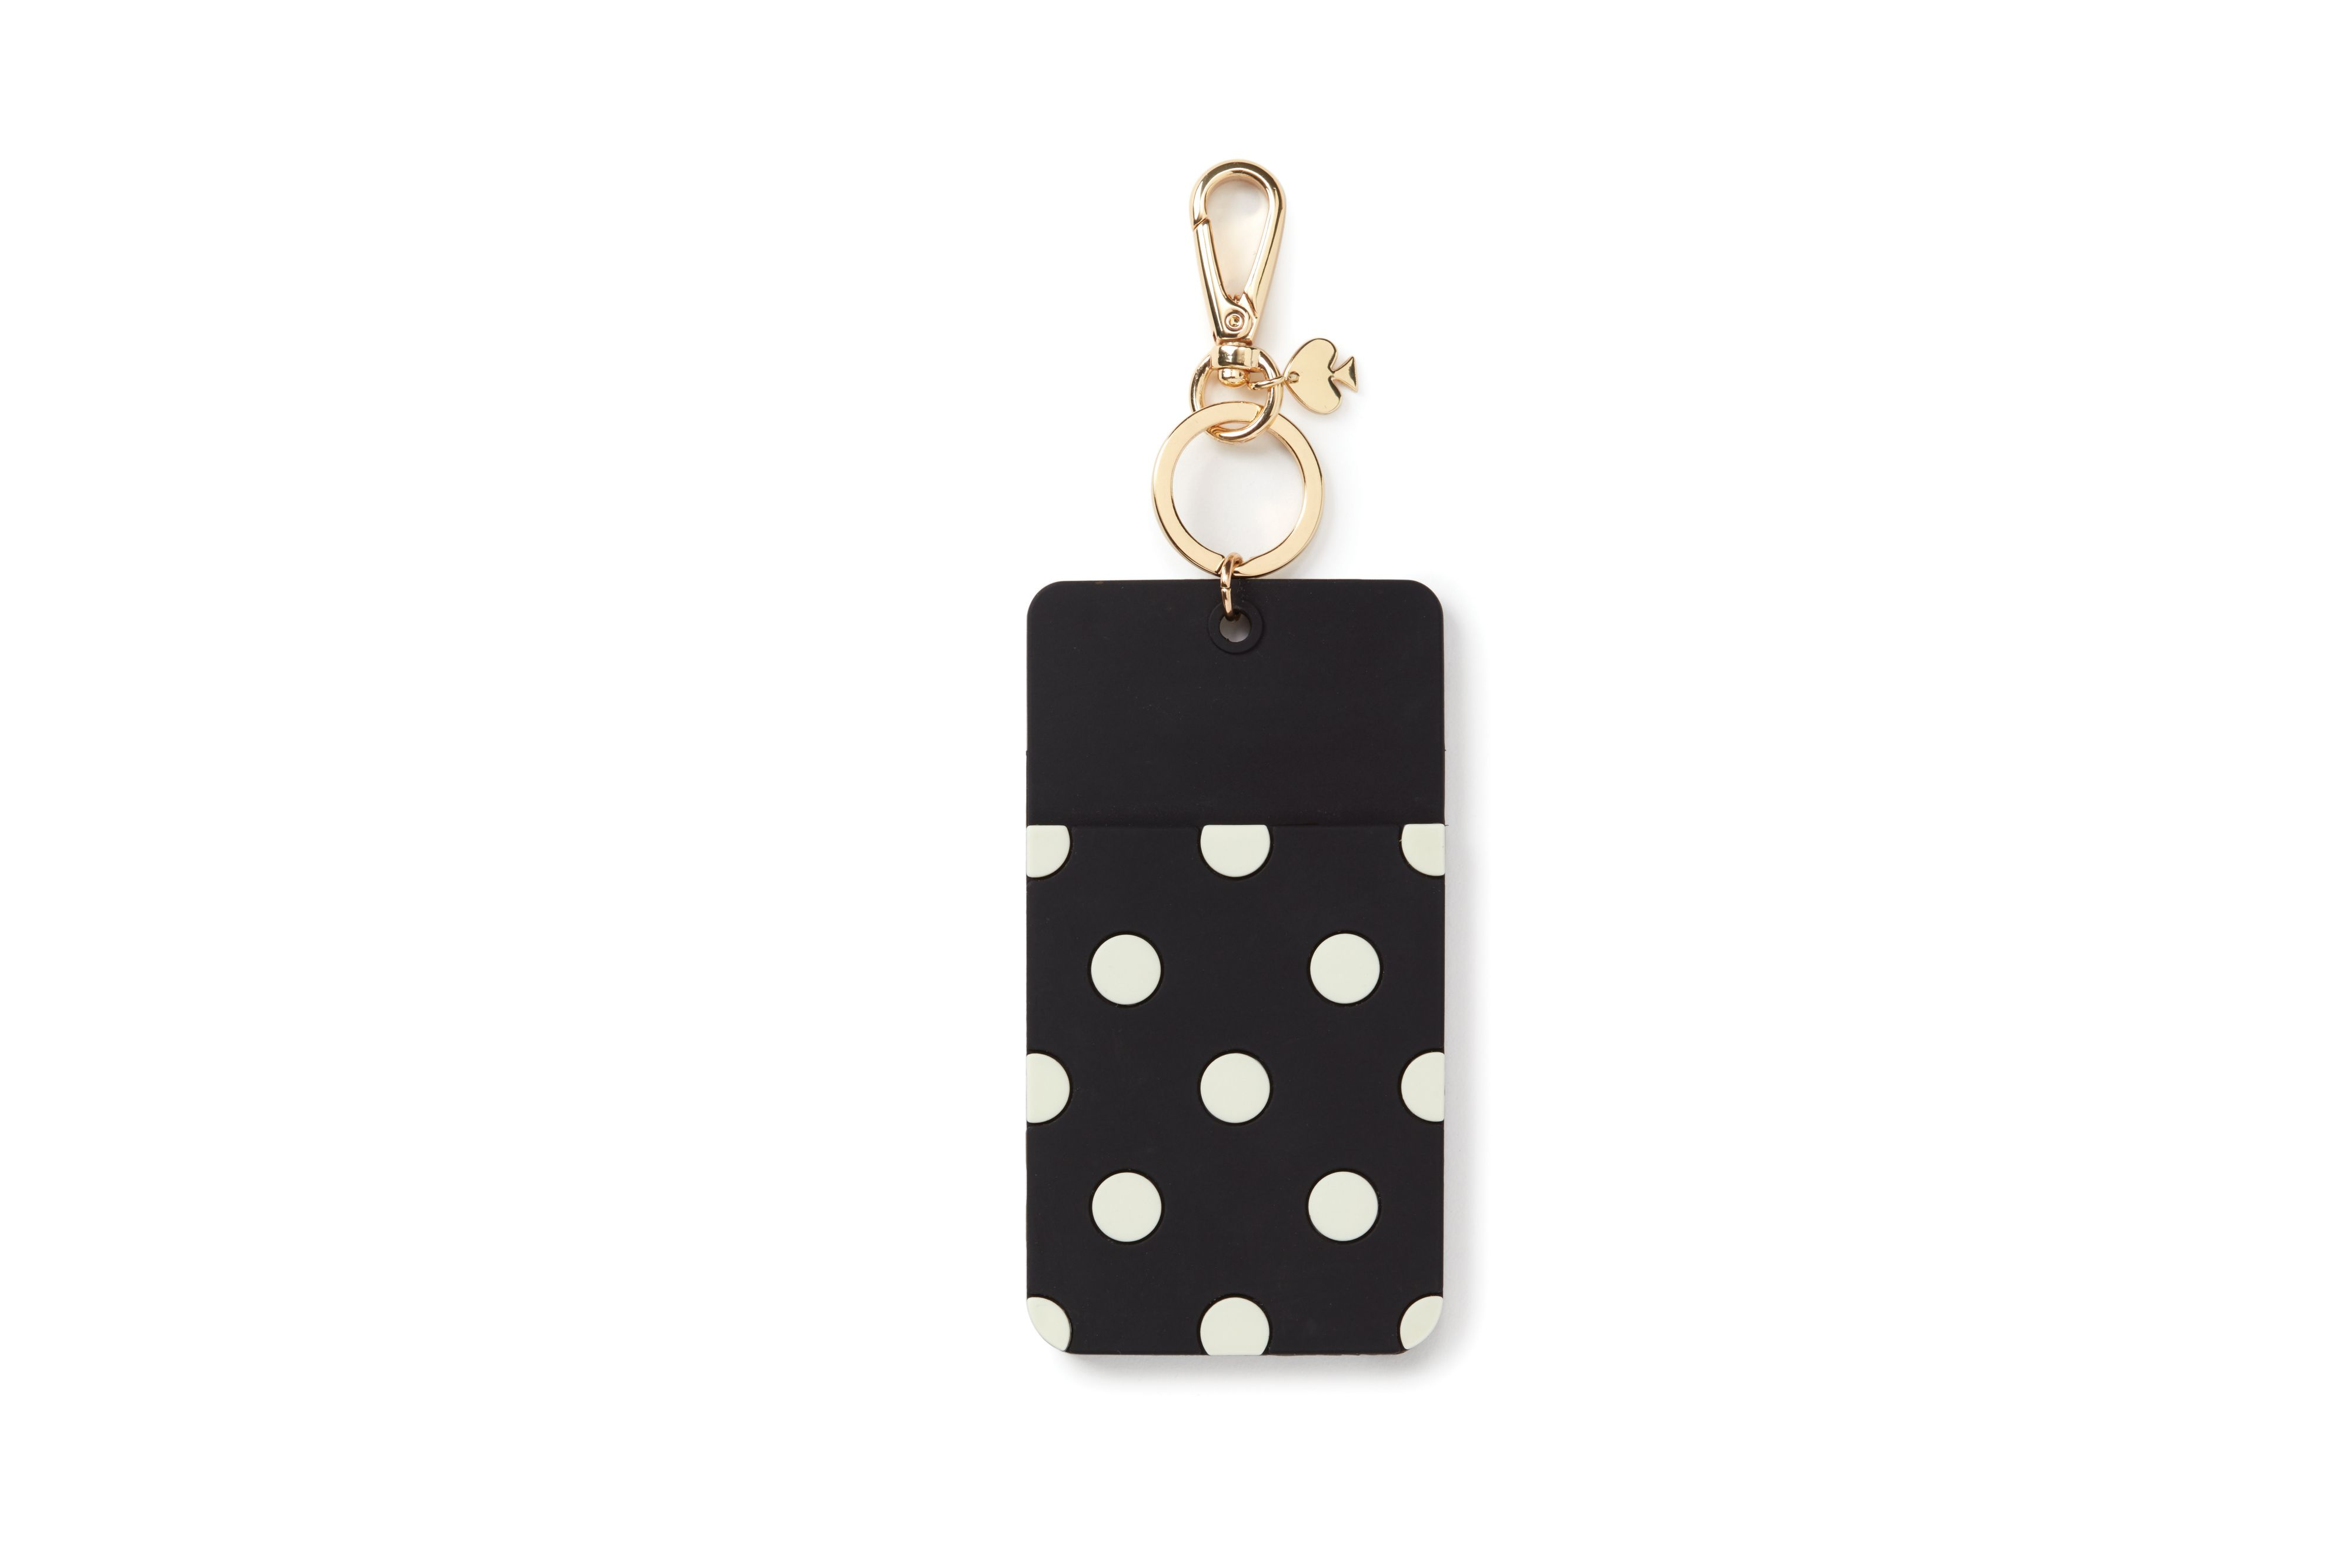 Kate Spade New York Why Hello There Black polka dot ID keyring Black